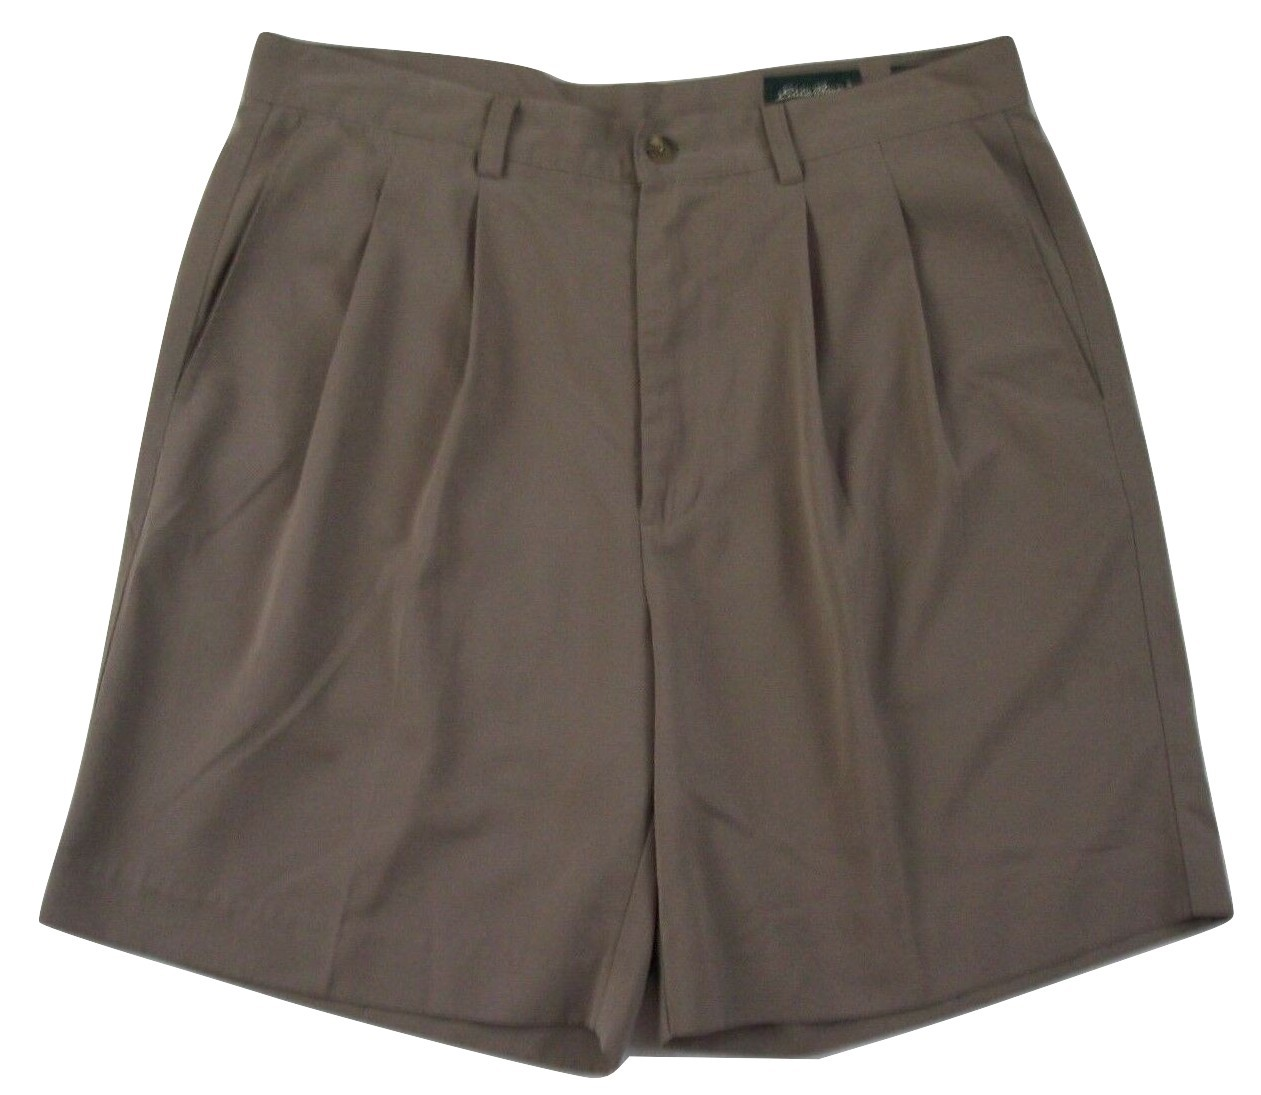 "Eddie Bauer Pleated Golf Shorts Men's W36 Inseam 8"" 100% Polyester"